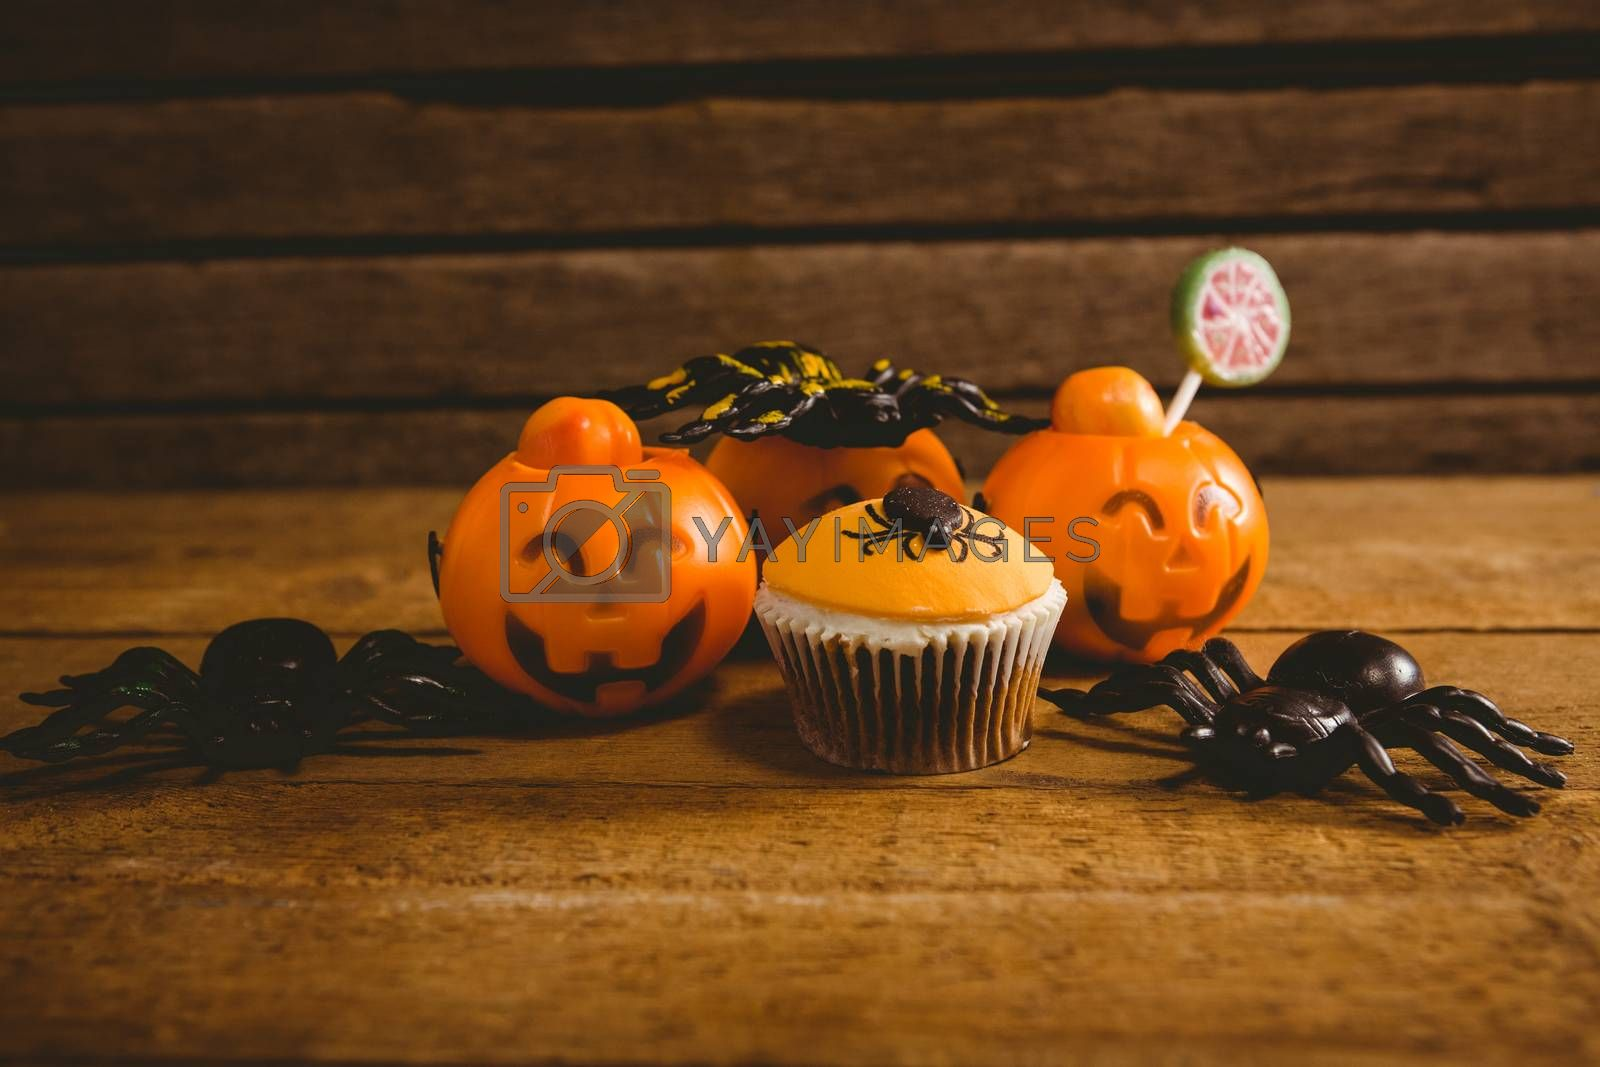 Halloween decorations with cup cake on wooden table